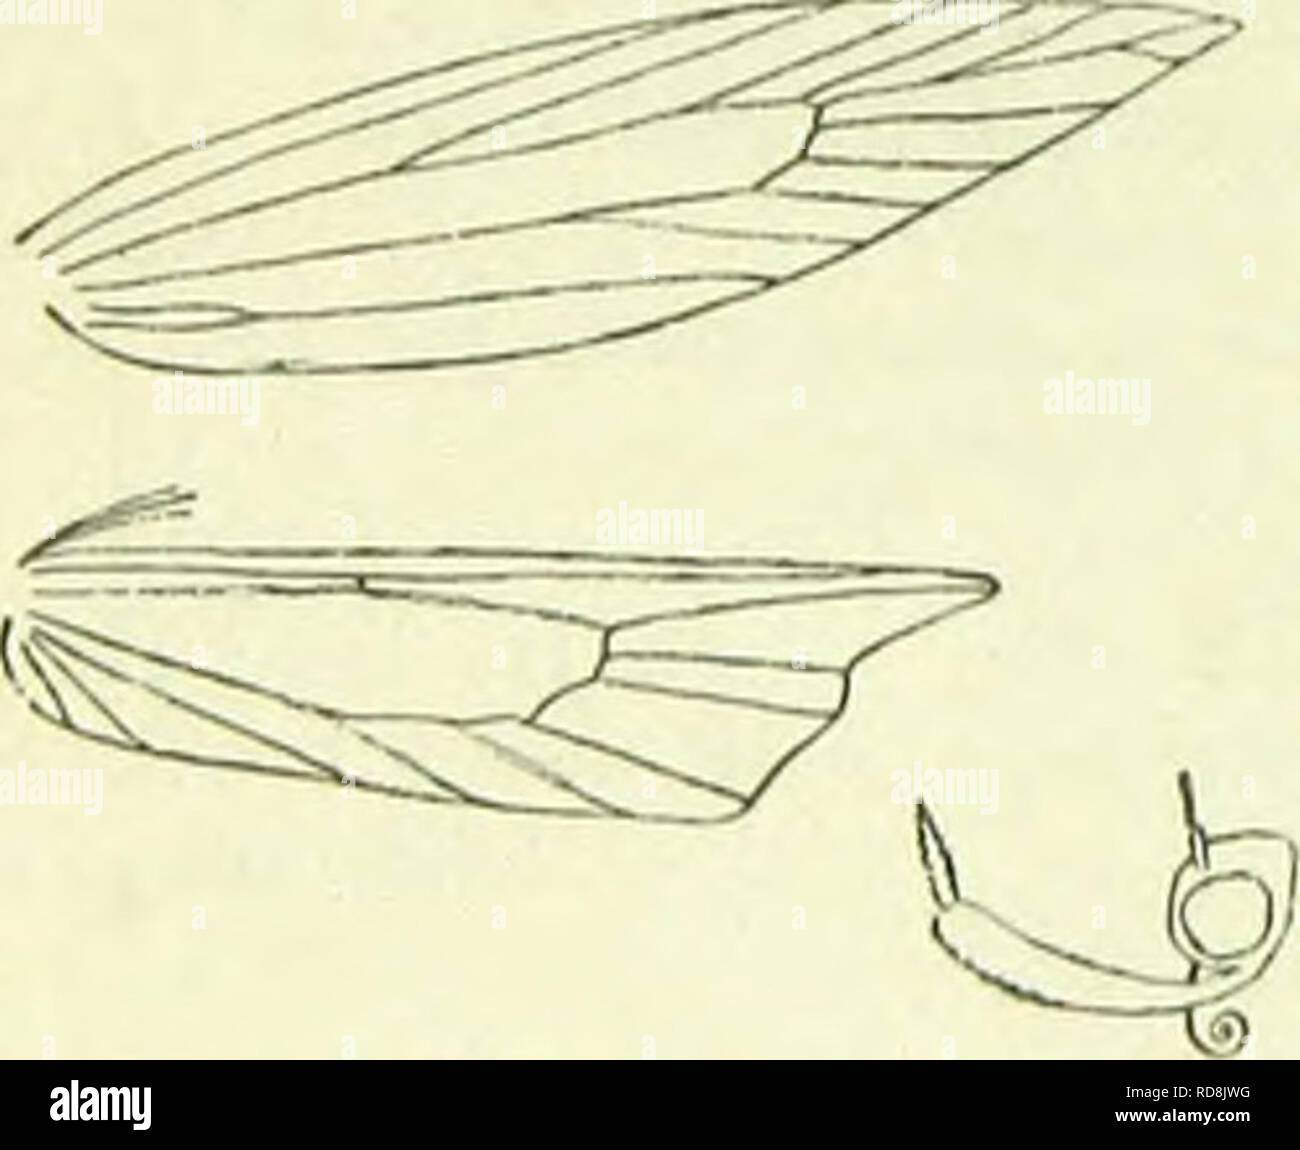 """. A handbook of British lepidoptera. Lepidoptera. 670 TINEINA Hindwings 1 or less, termcn not sinuate 21. Svmmoca. 21. Abdomen flattened . 15. Platyedra. """" not flattened . .12. Geleciha. 1. PaKASIA, I)II/i. Labial palpi very long, more or less thickened with some- what loose scales, terminal joint much shorter than second. Forcwings : 7 and 8 out of 6. Hindwings under 1, elongate- trapezoidal, apex acute, produced, termen sinuate, cilia 2; 3 and 4 remote, parallel, 5 approximated to 6, 6 and 7 somewhat approximated. A small northern temperate genus, derived from Aristotelia. Imago with forewin - Stock Image"""